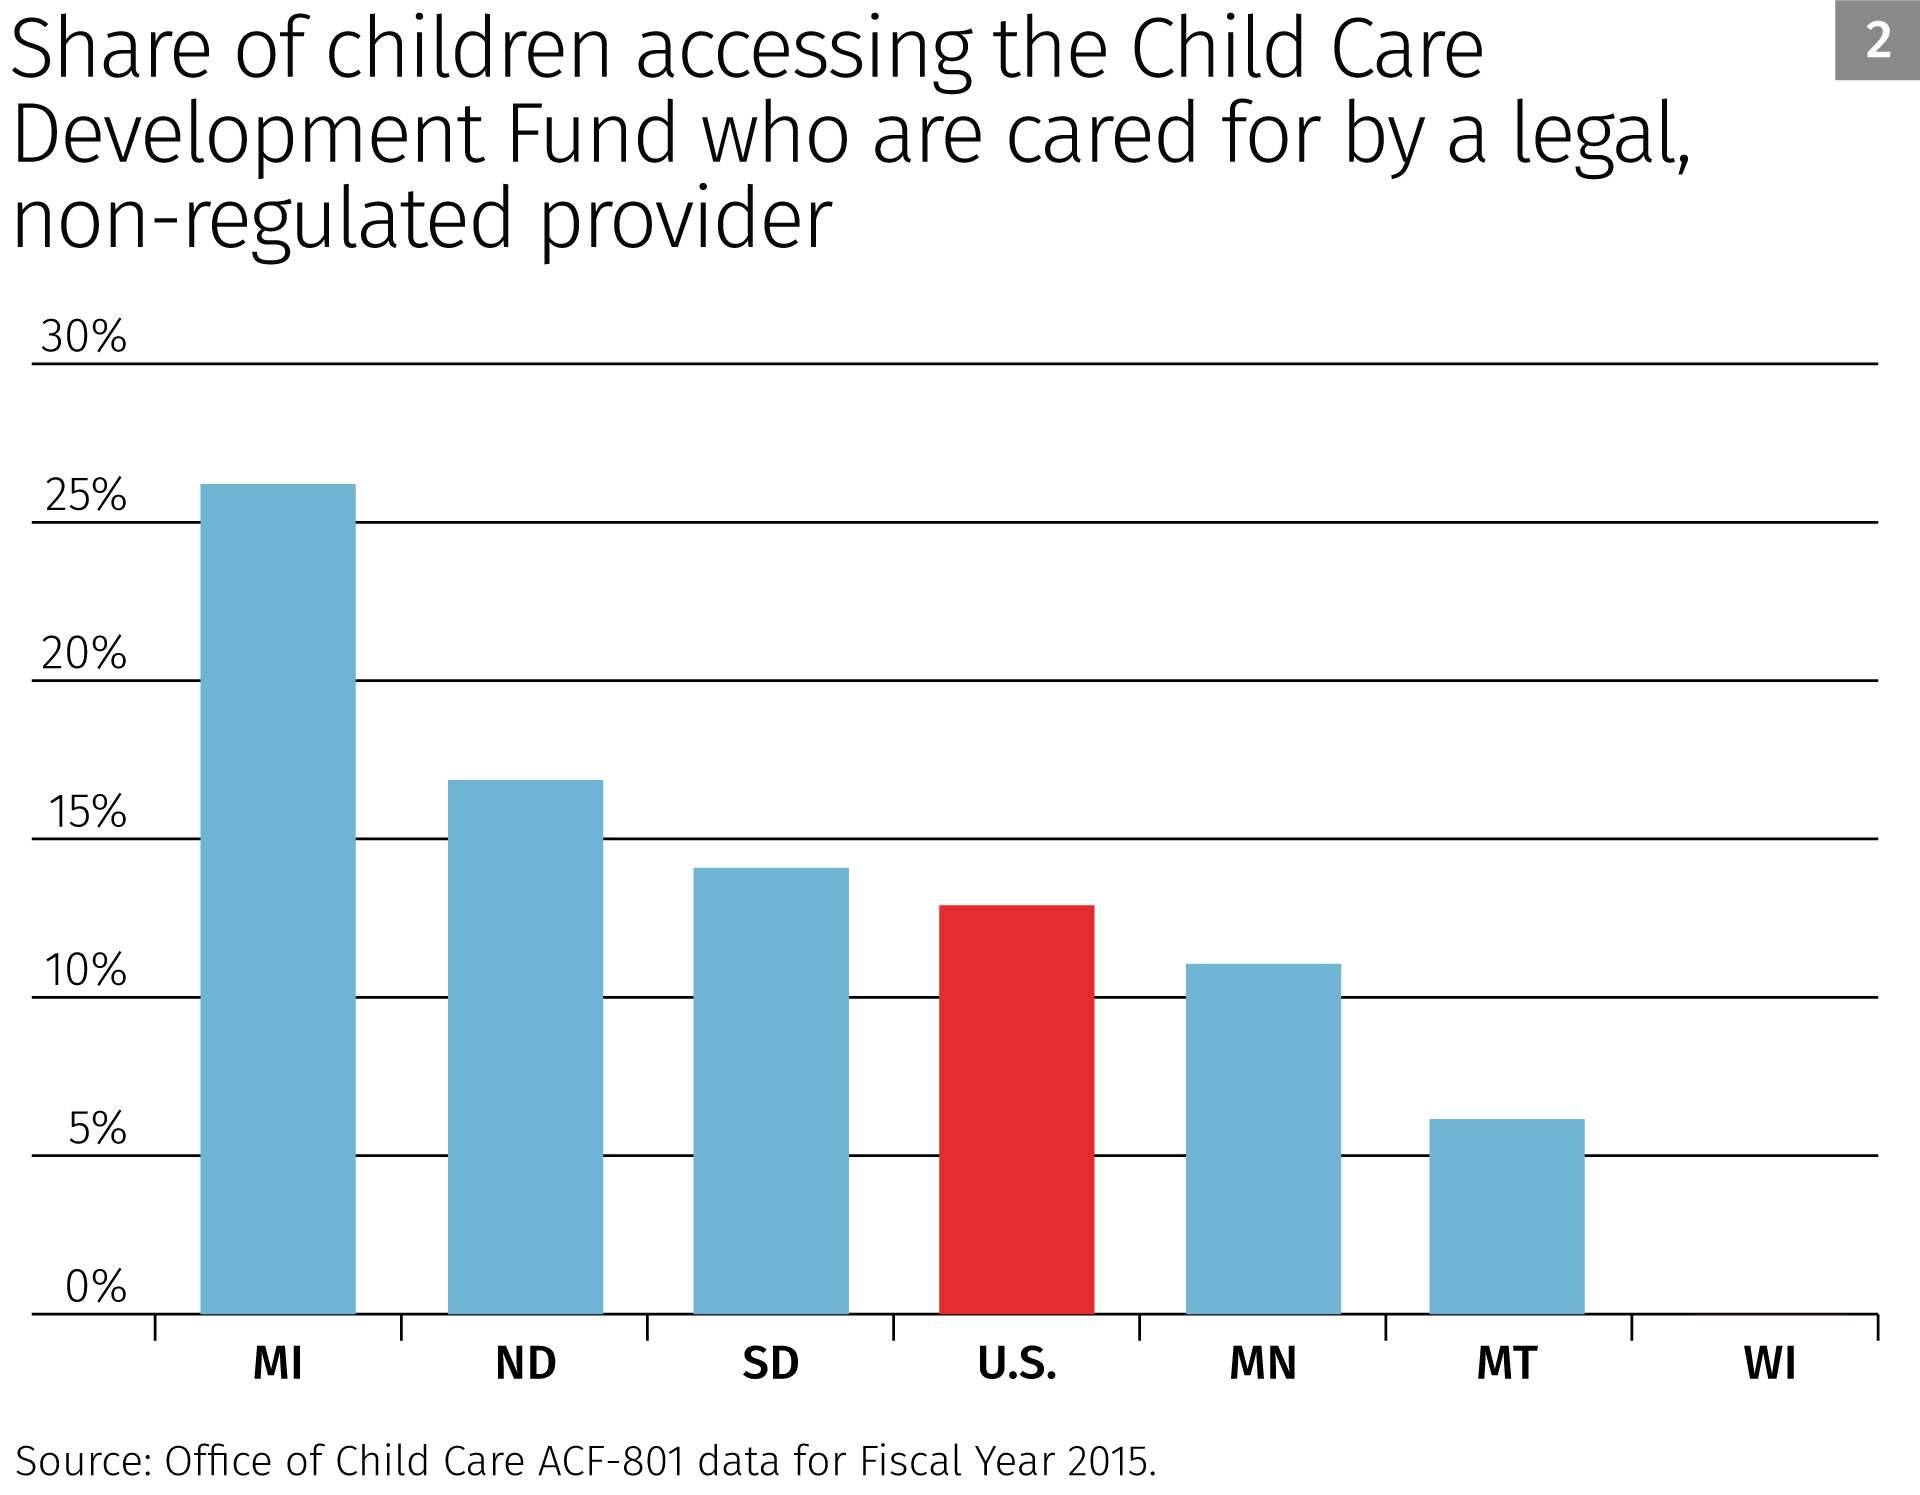 Share of children accessing the child care development fund